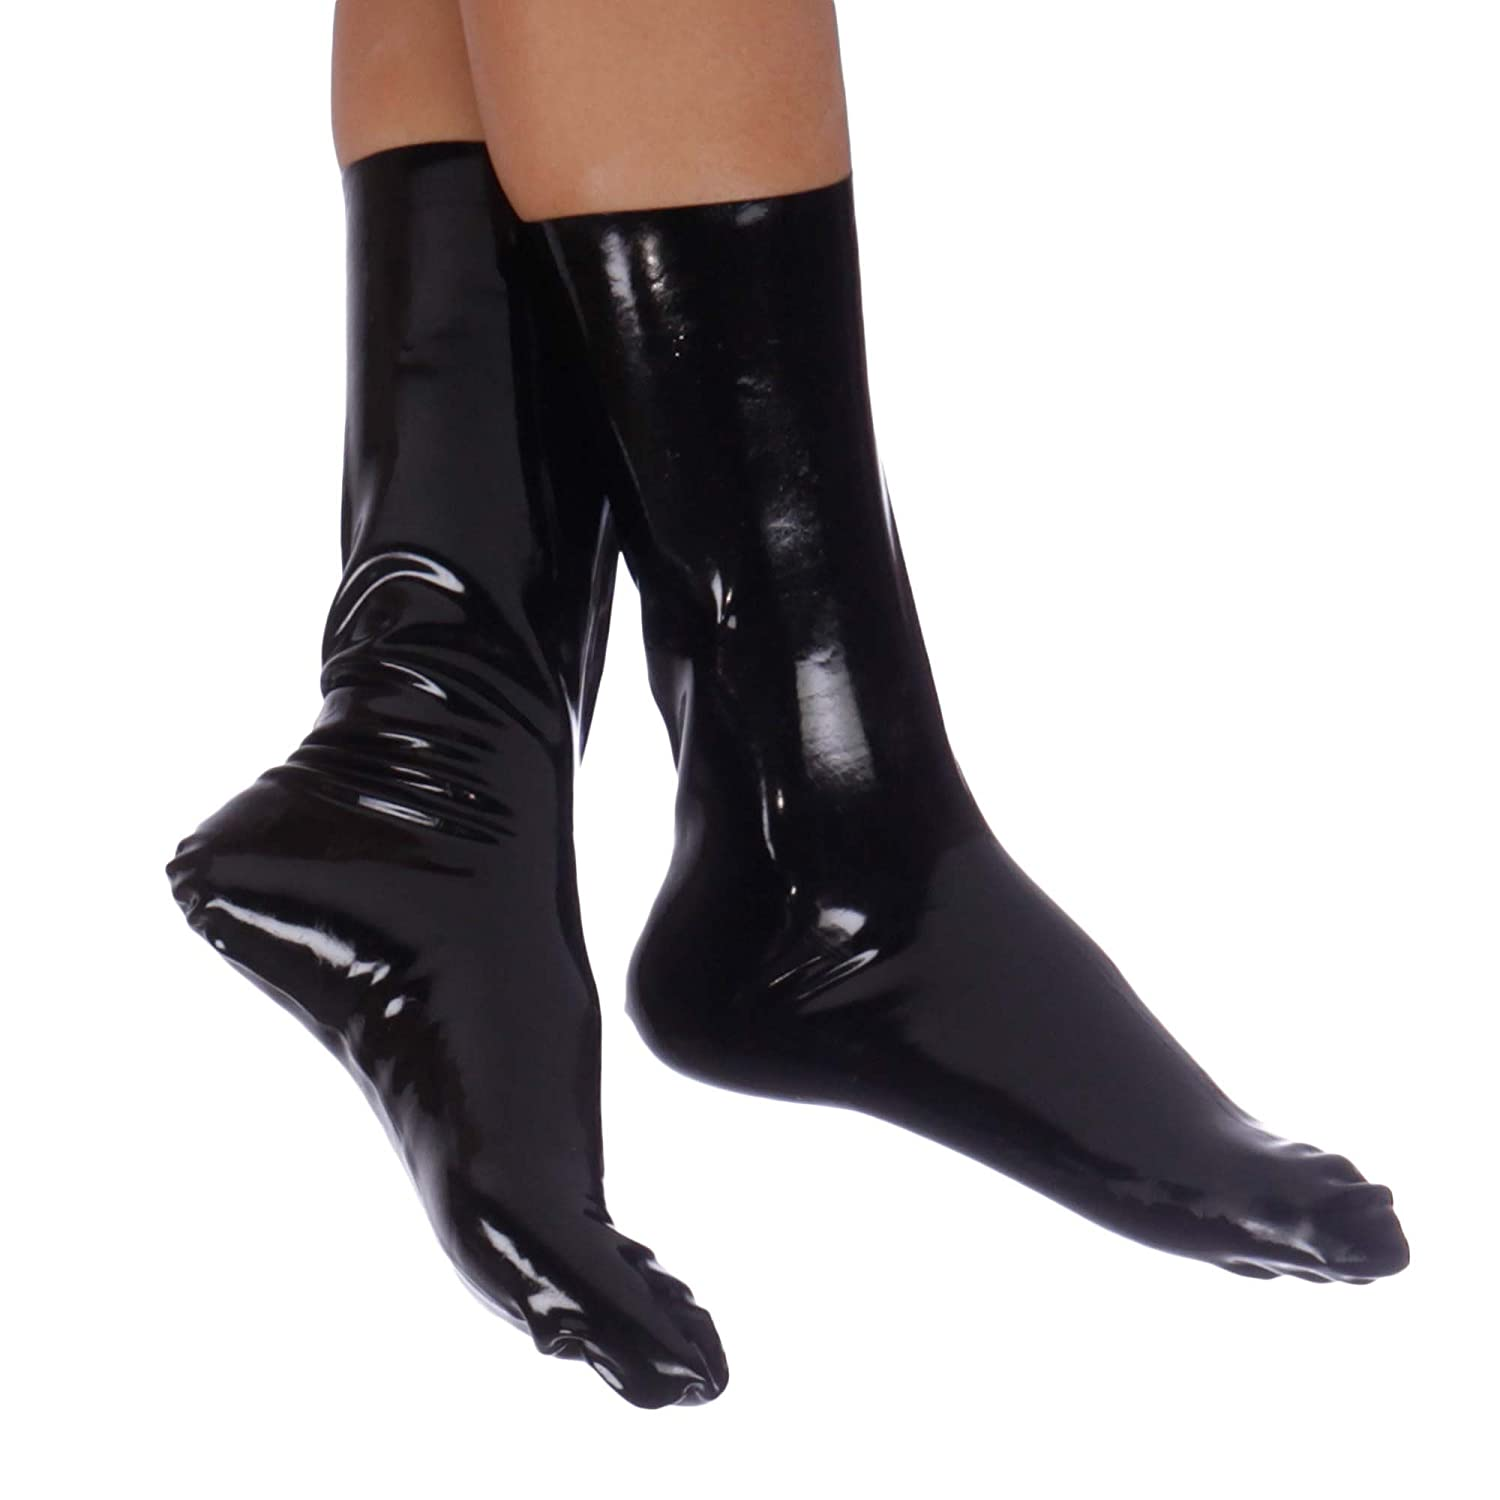 Brand New Black Latex Rubber Gummi Socks (one size) Lequida